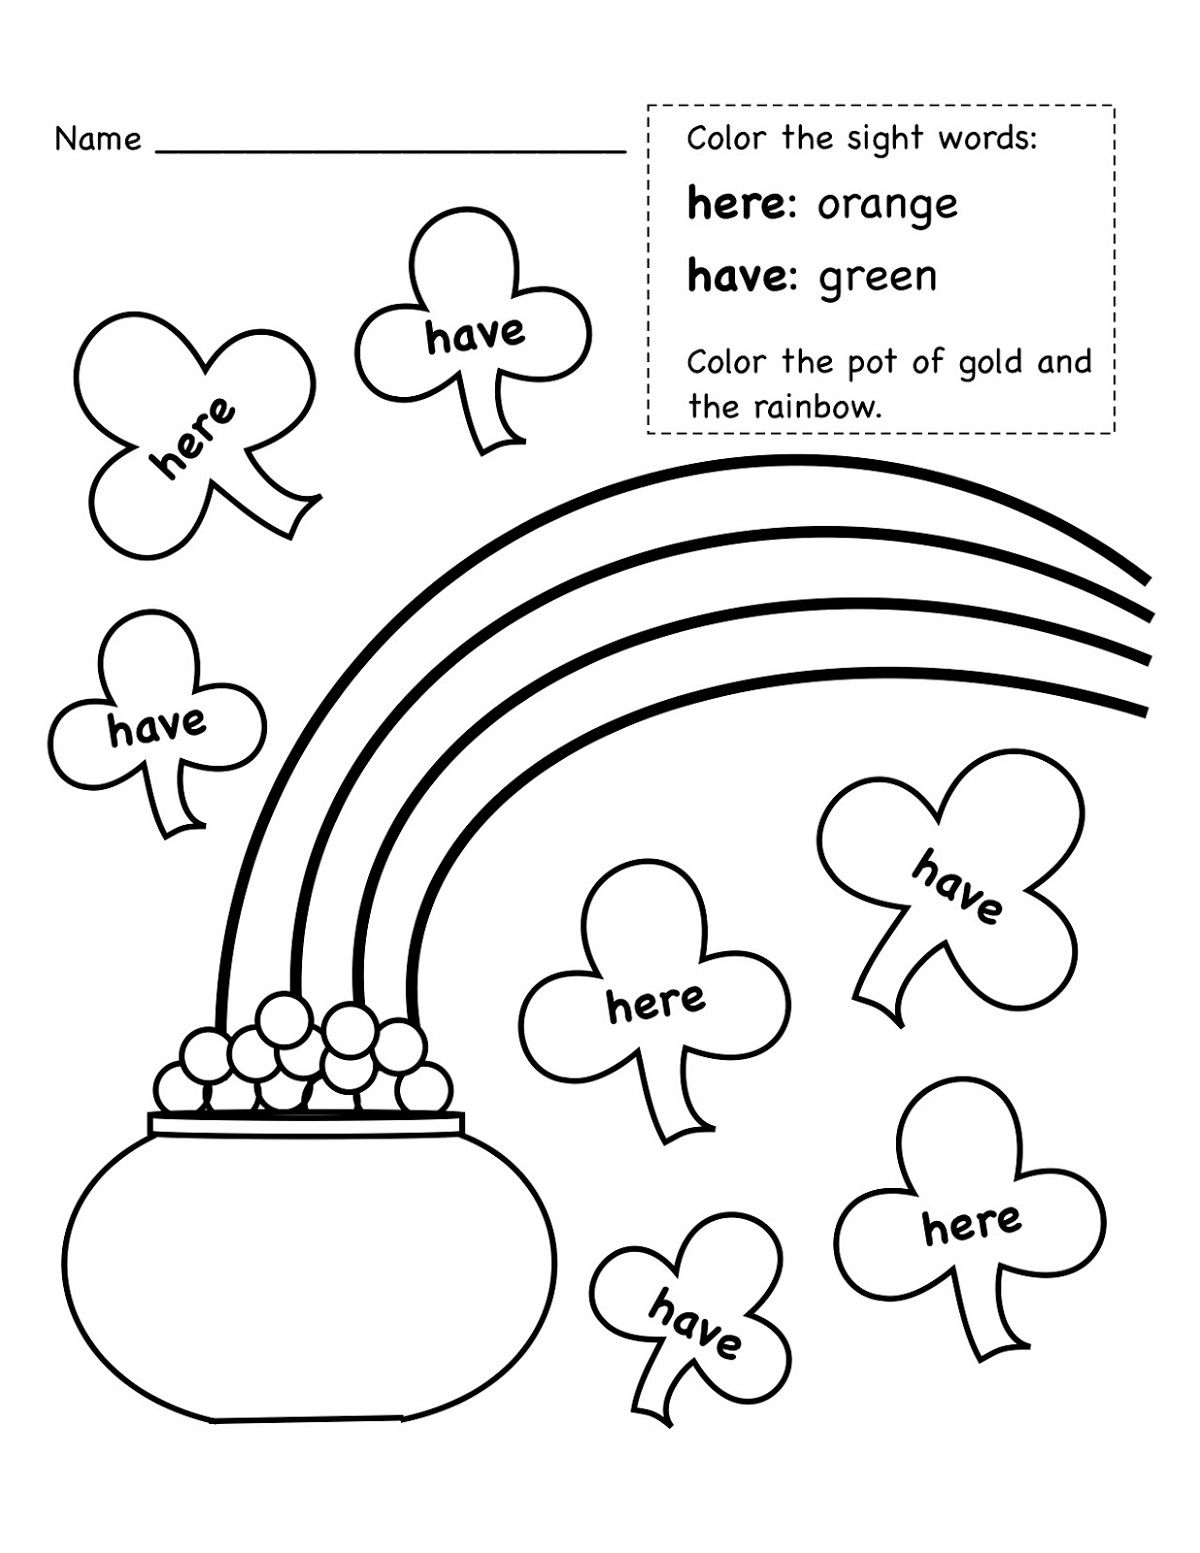 37 Awesome Preschool Worksheets Ideas S